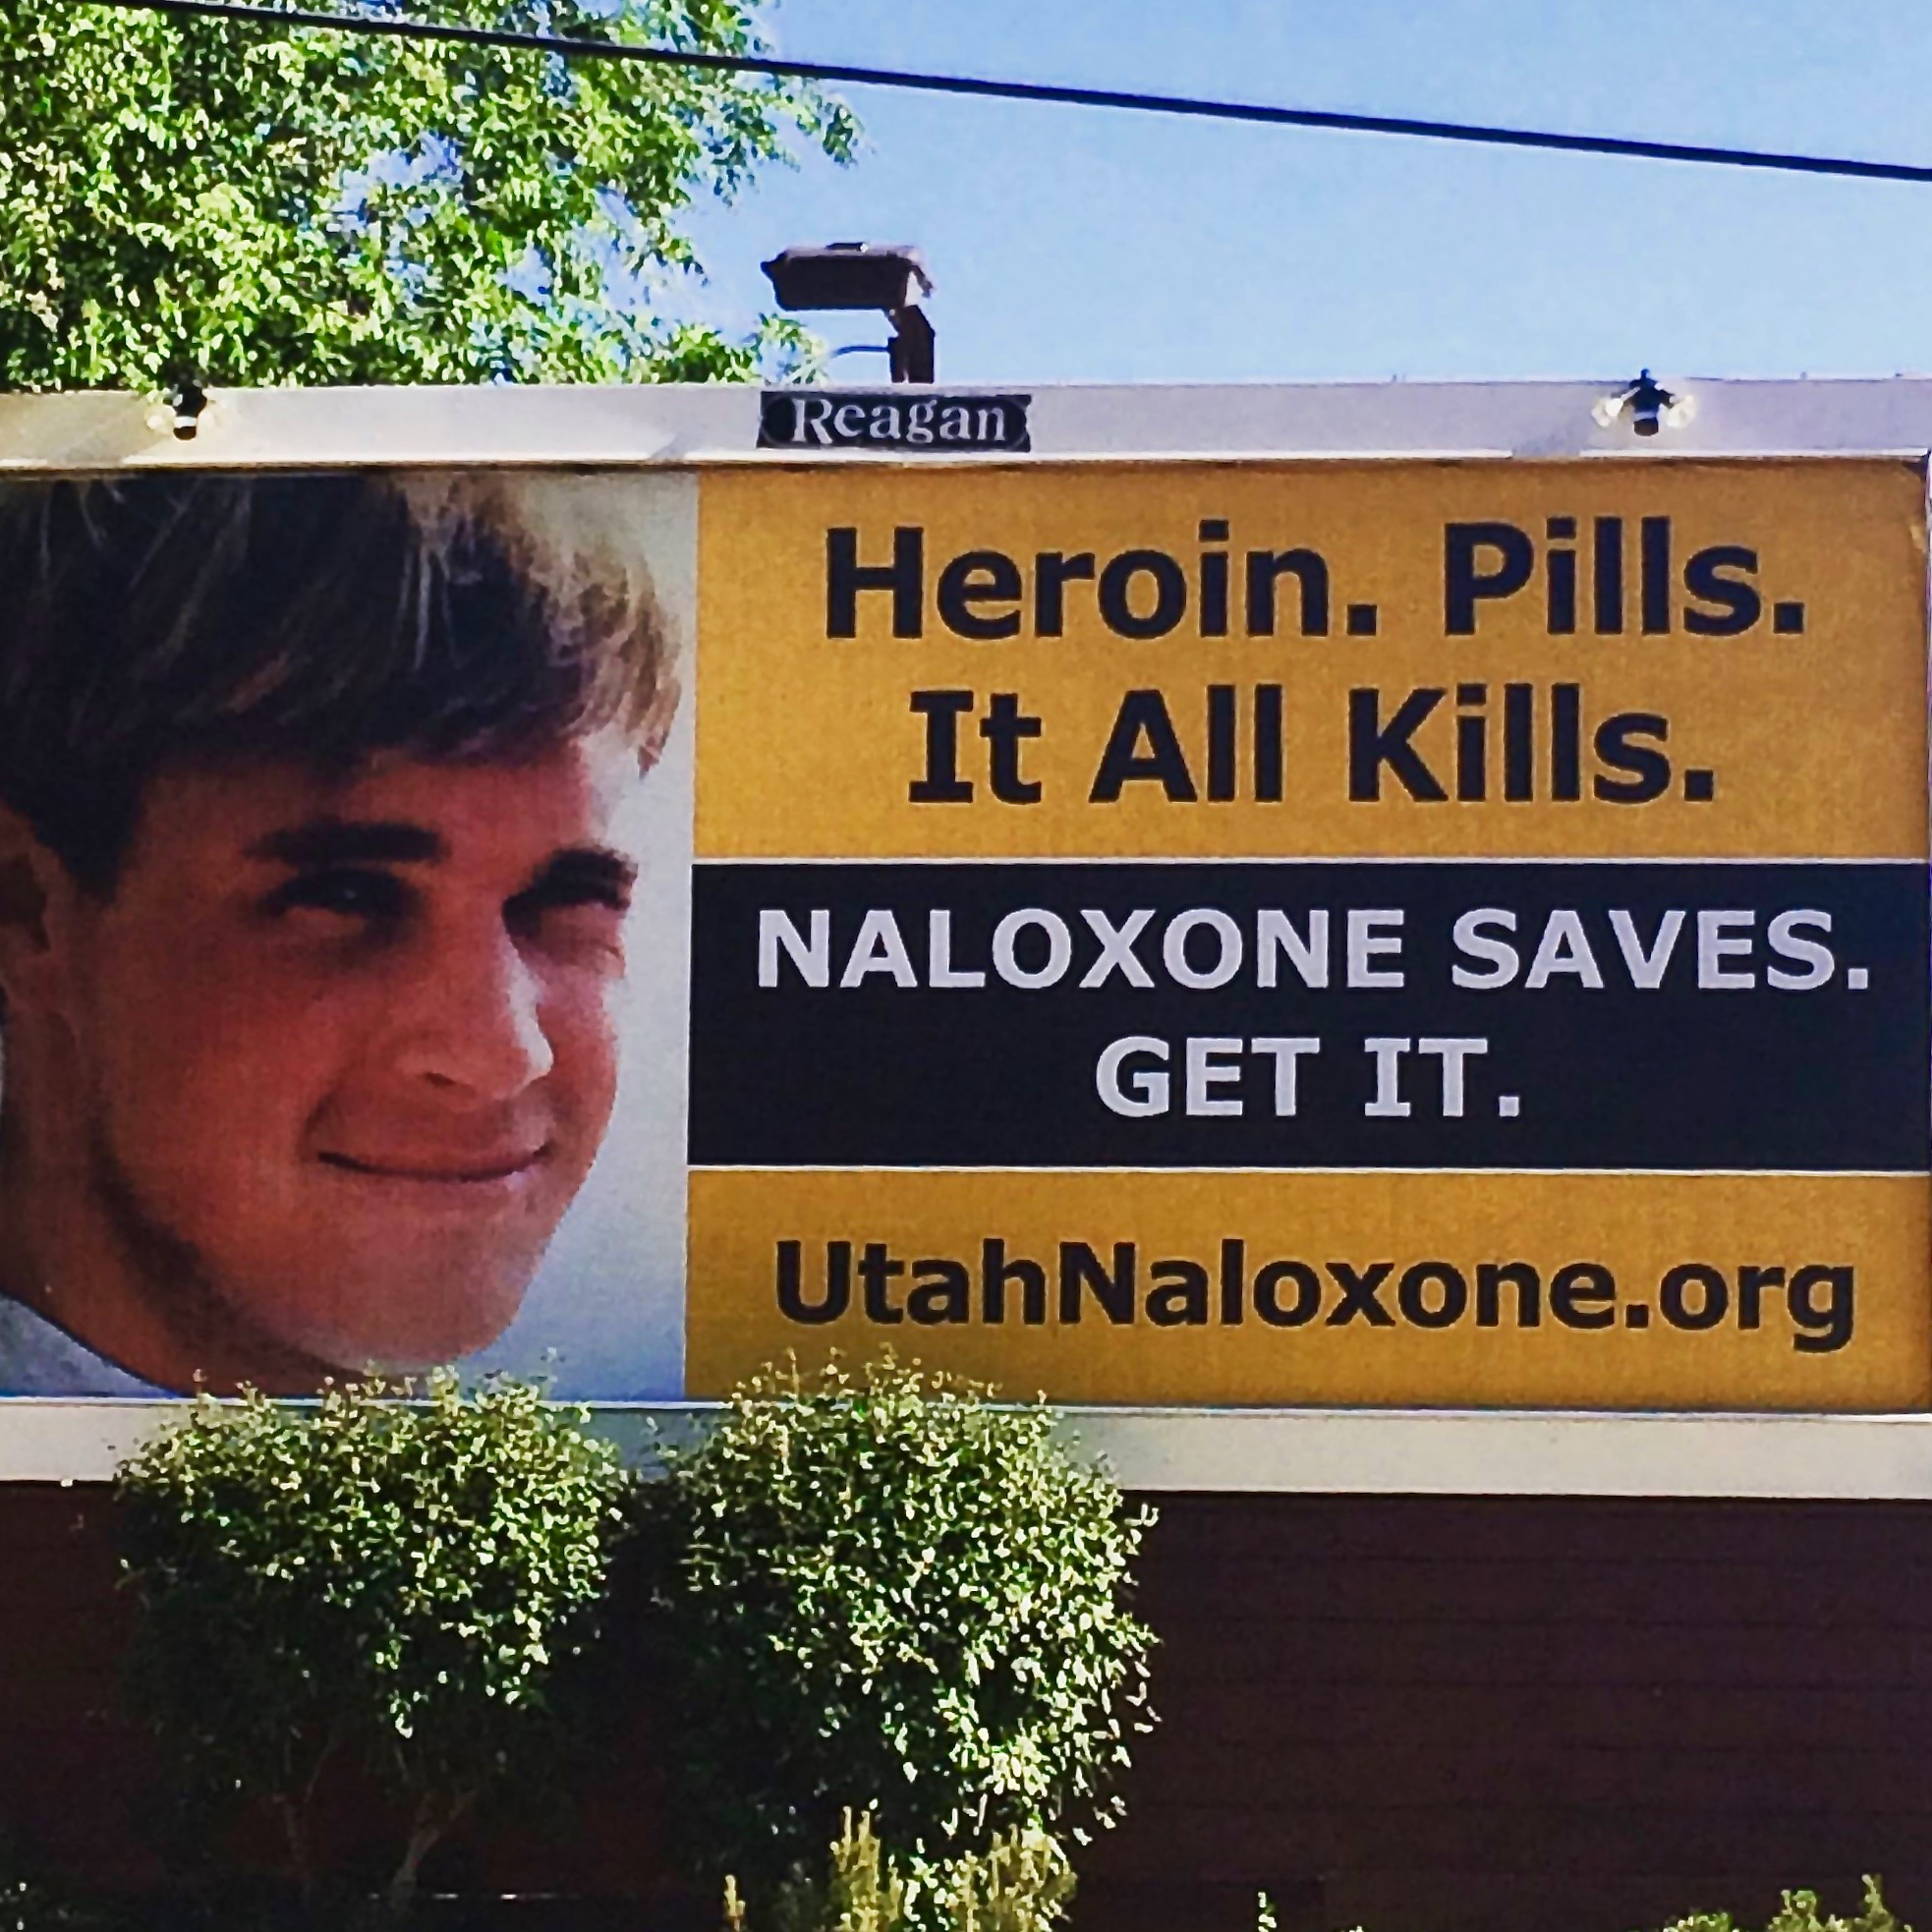 One of the billboards that has been placed in northern Utah showing a victim of a heroin overdose and promoting naloxone, an anti-overdose drug, Utah, circa June 2016 | Inset photo courtesy of Sam Plumb, Utah Naloxone; St. George News